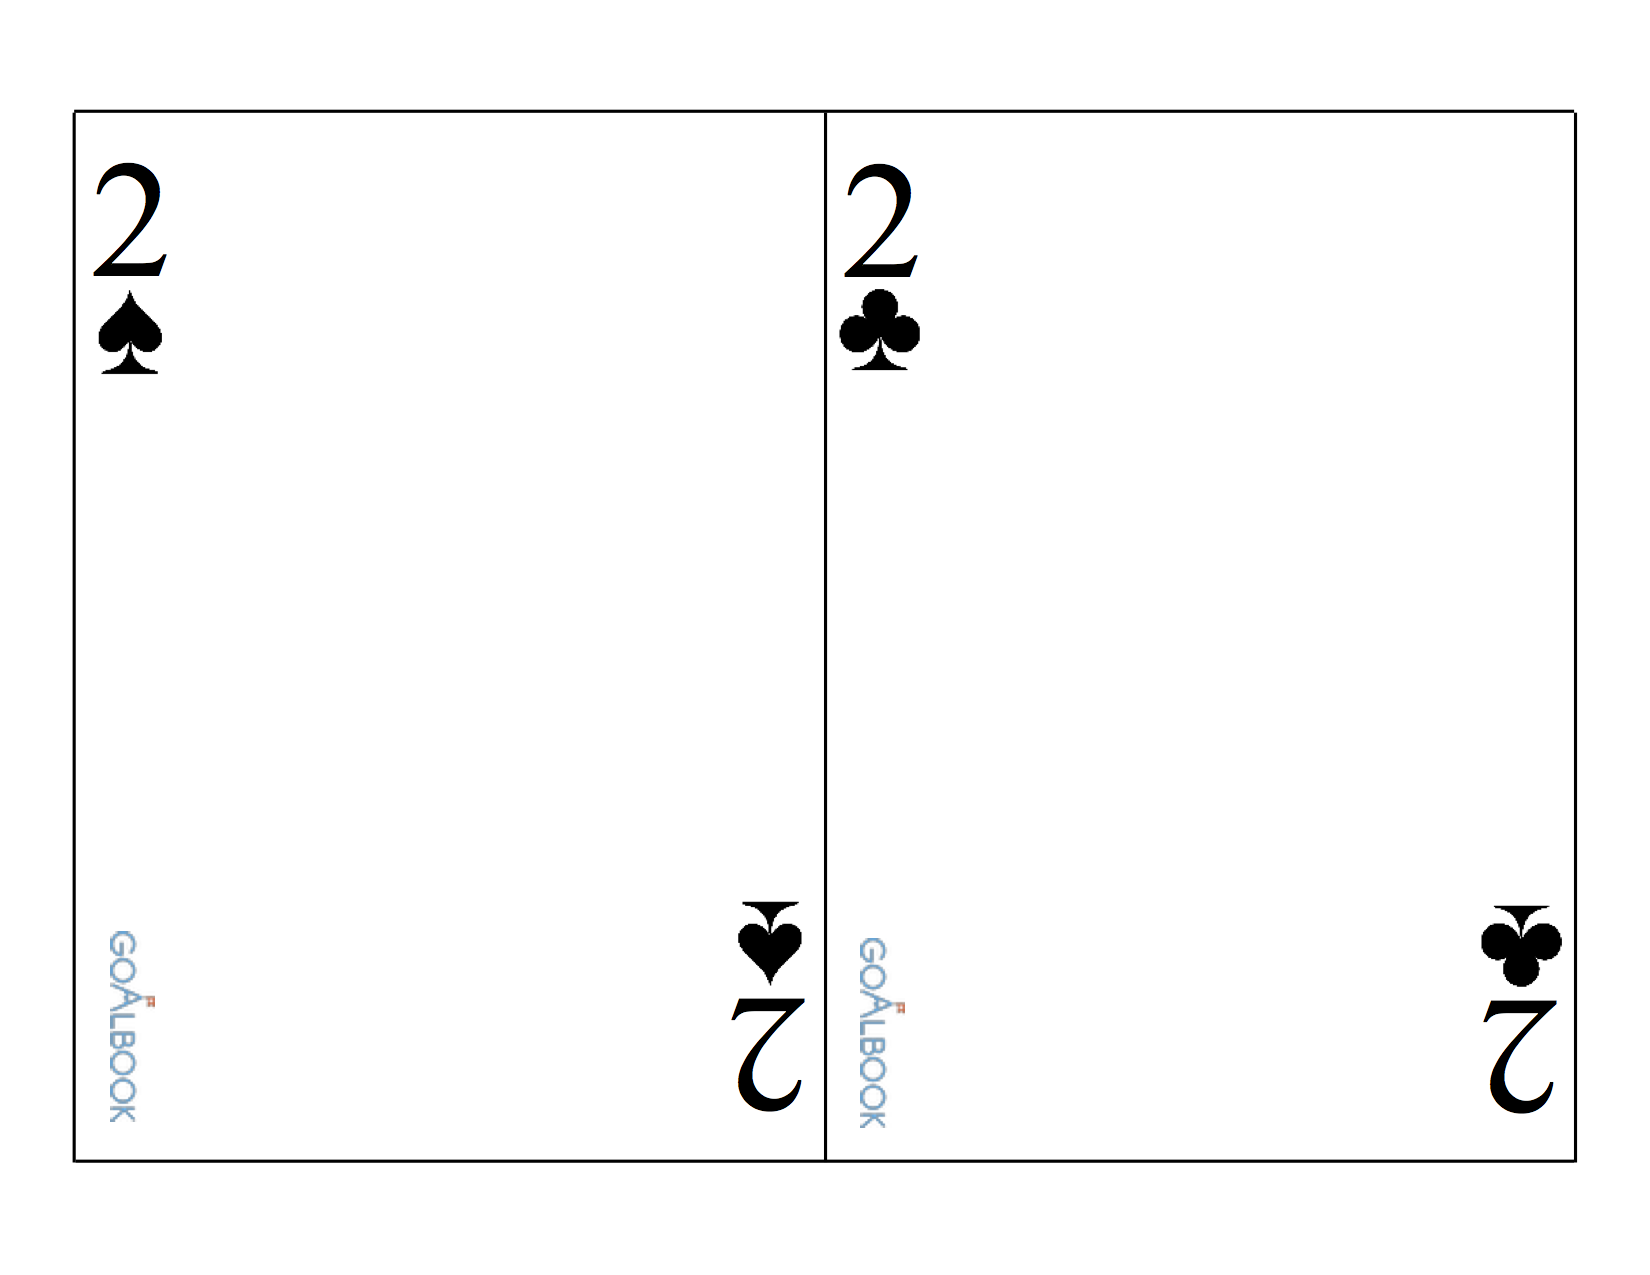 Large Playing Cards without Images